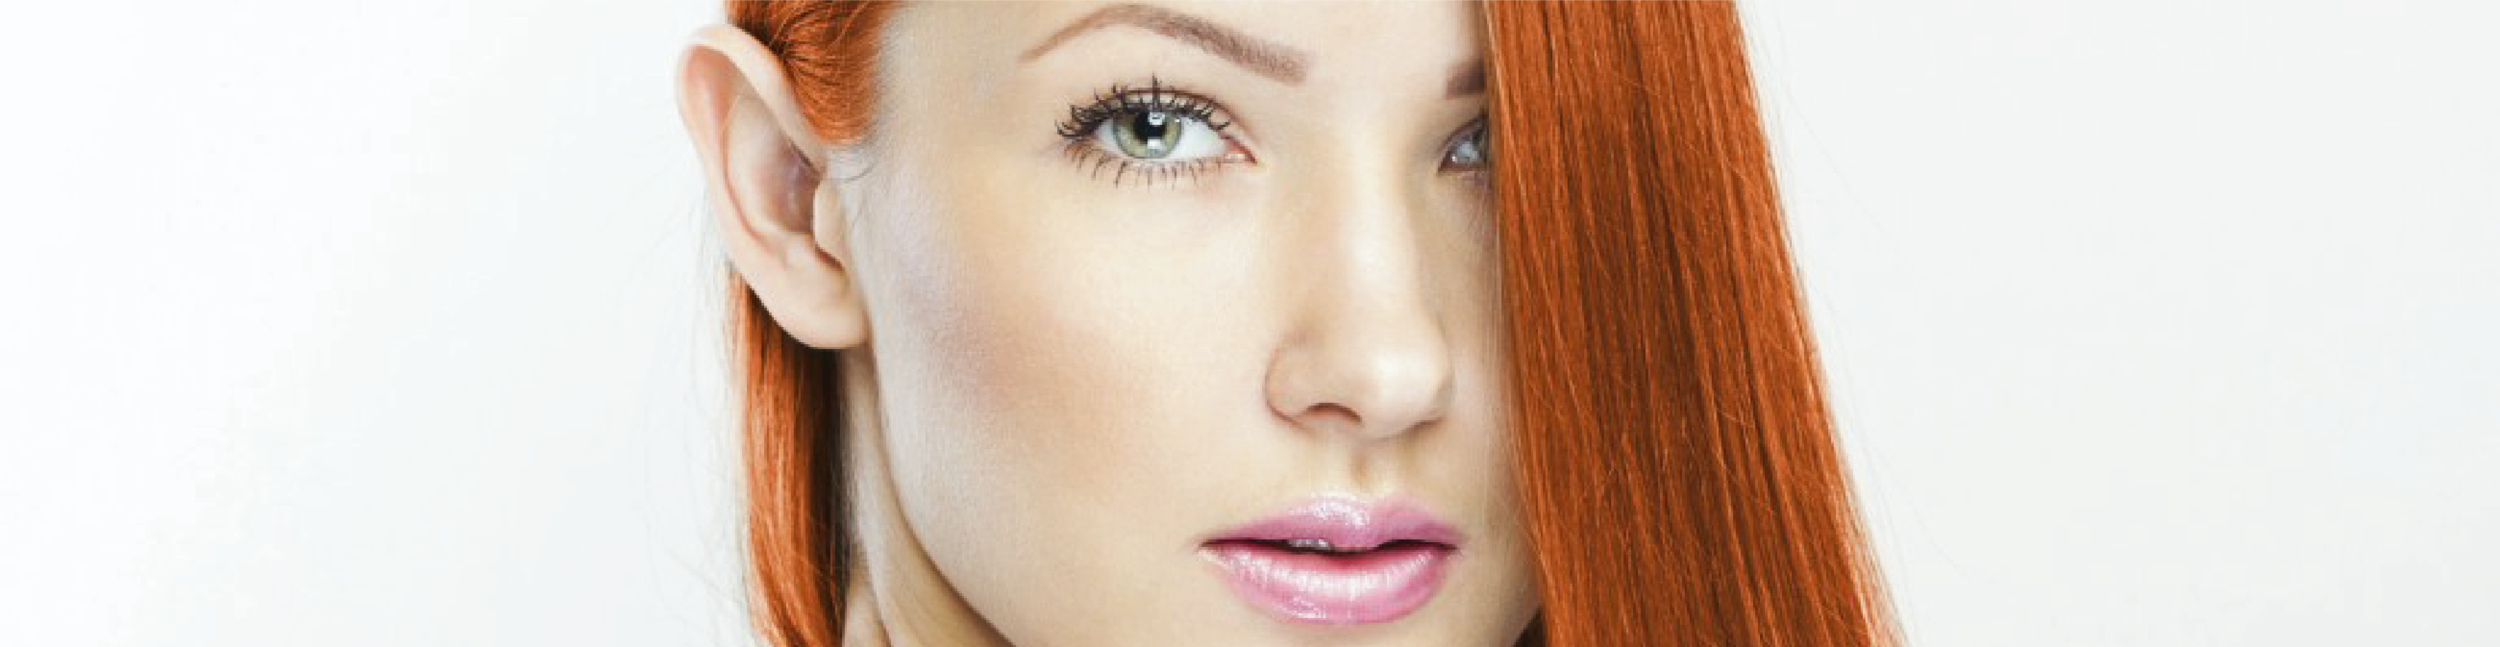 woman-color-hair-01-01.png